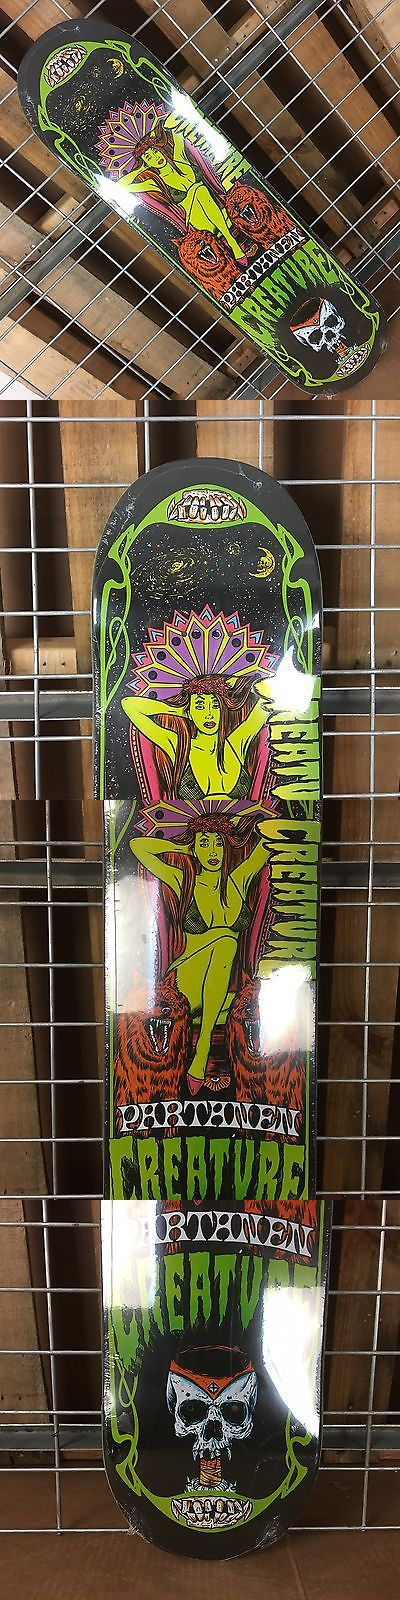 Decks 16263: New Creature Multi Color Hesh Trippers Pro Skateboard Deck - 31.9In X 8.2In -> BUY IT NOW ONLY: $44.95 on eBay!